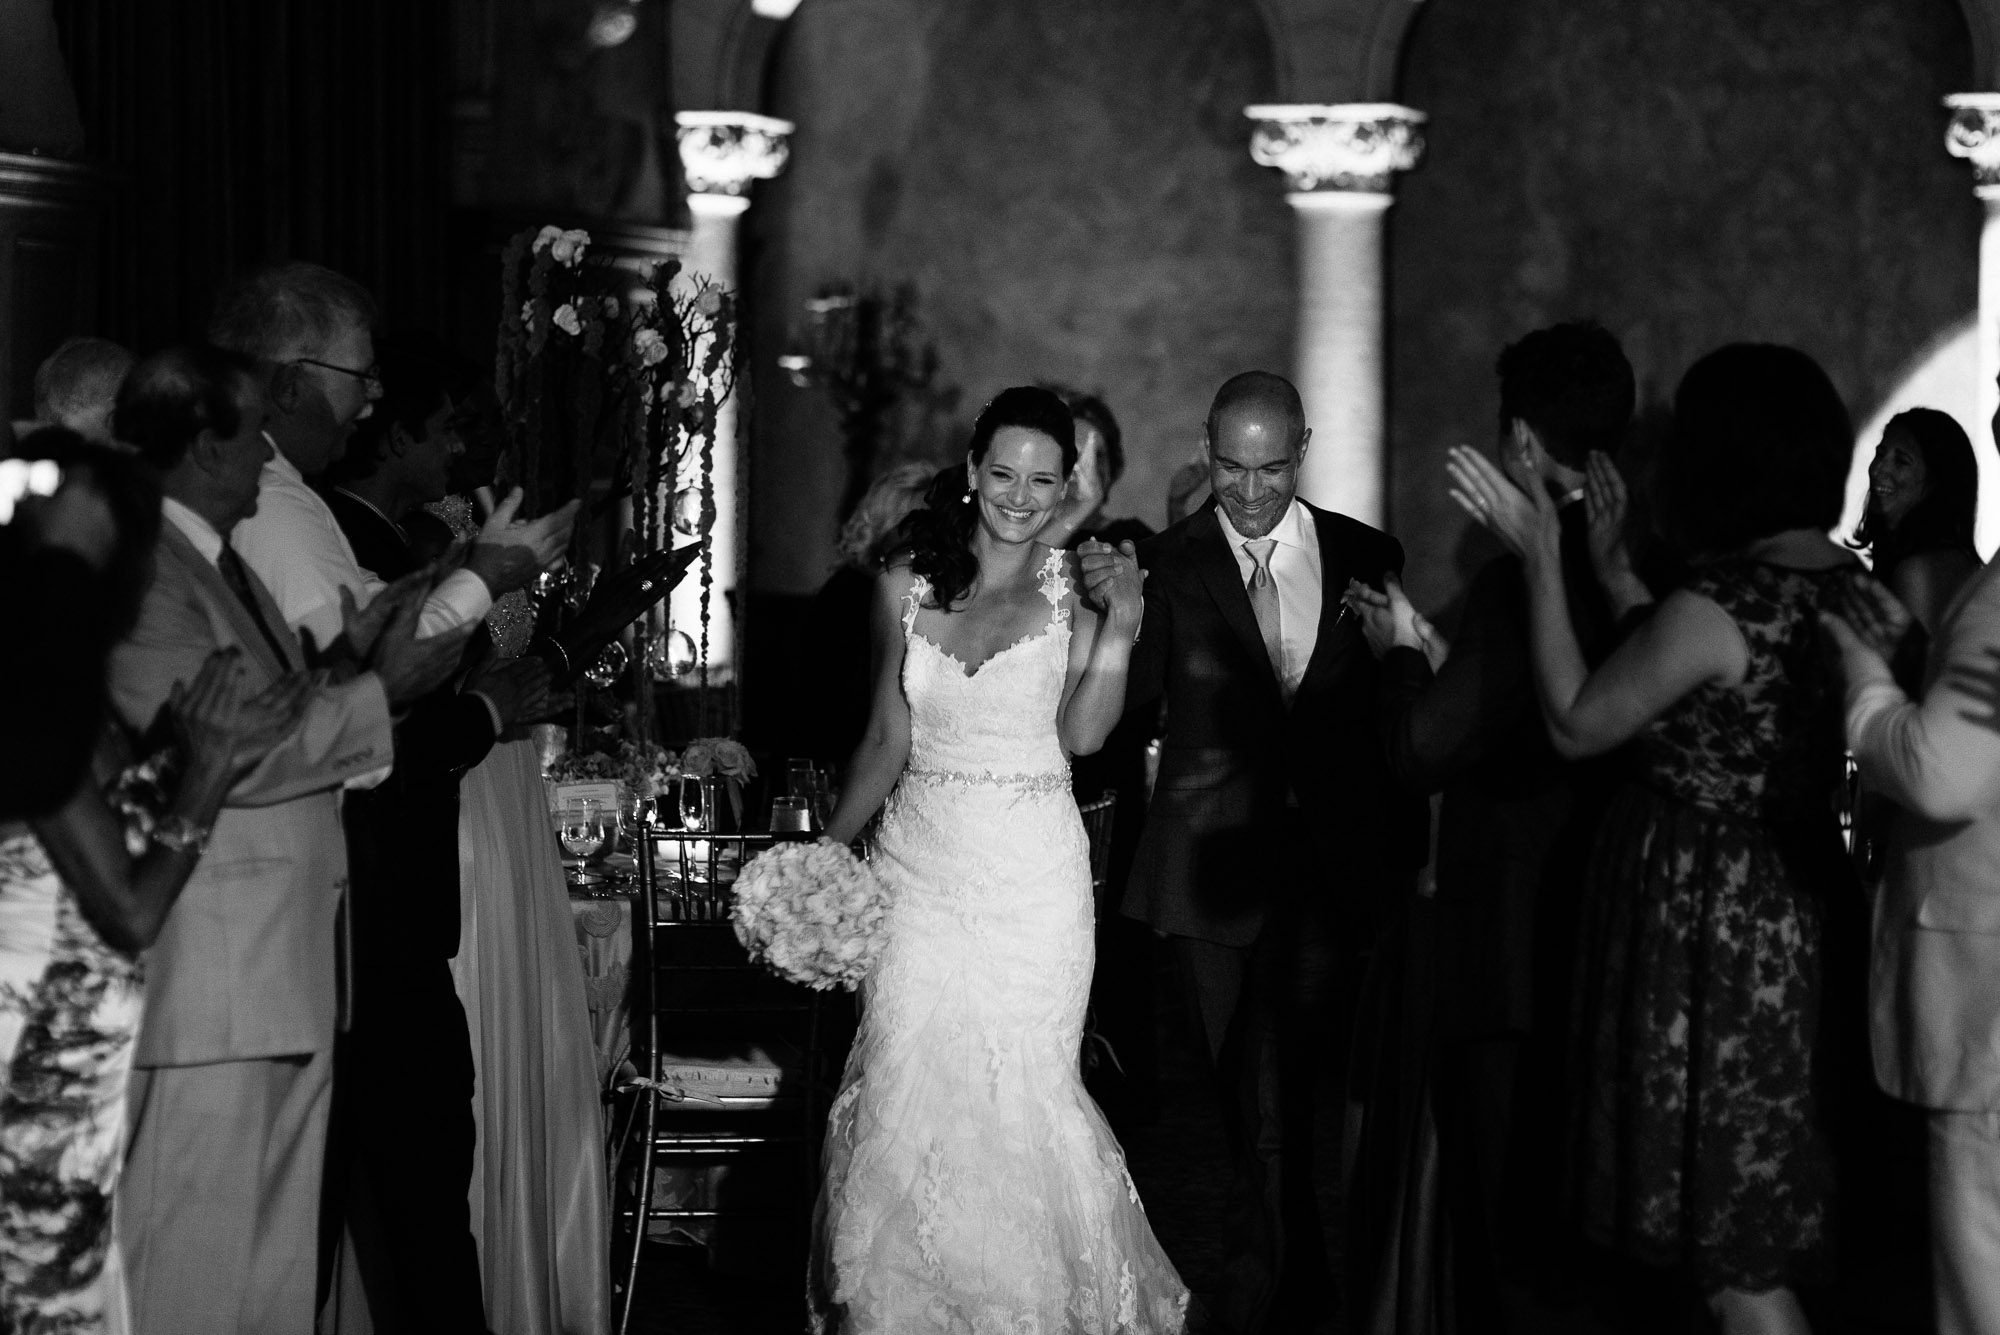 Biltmore Hotel Miami Wedding